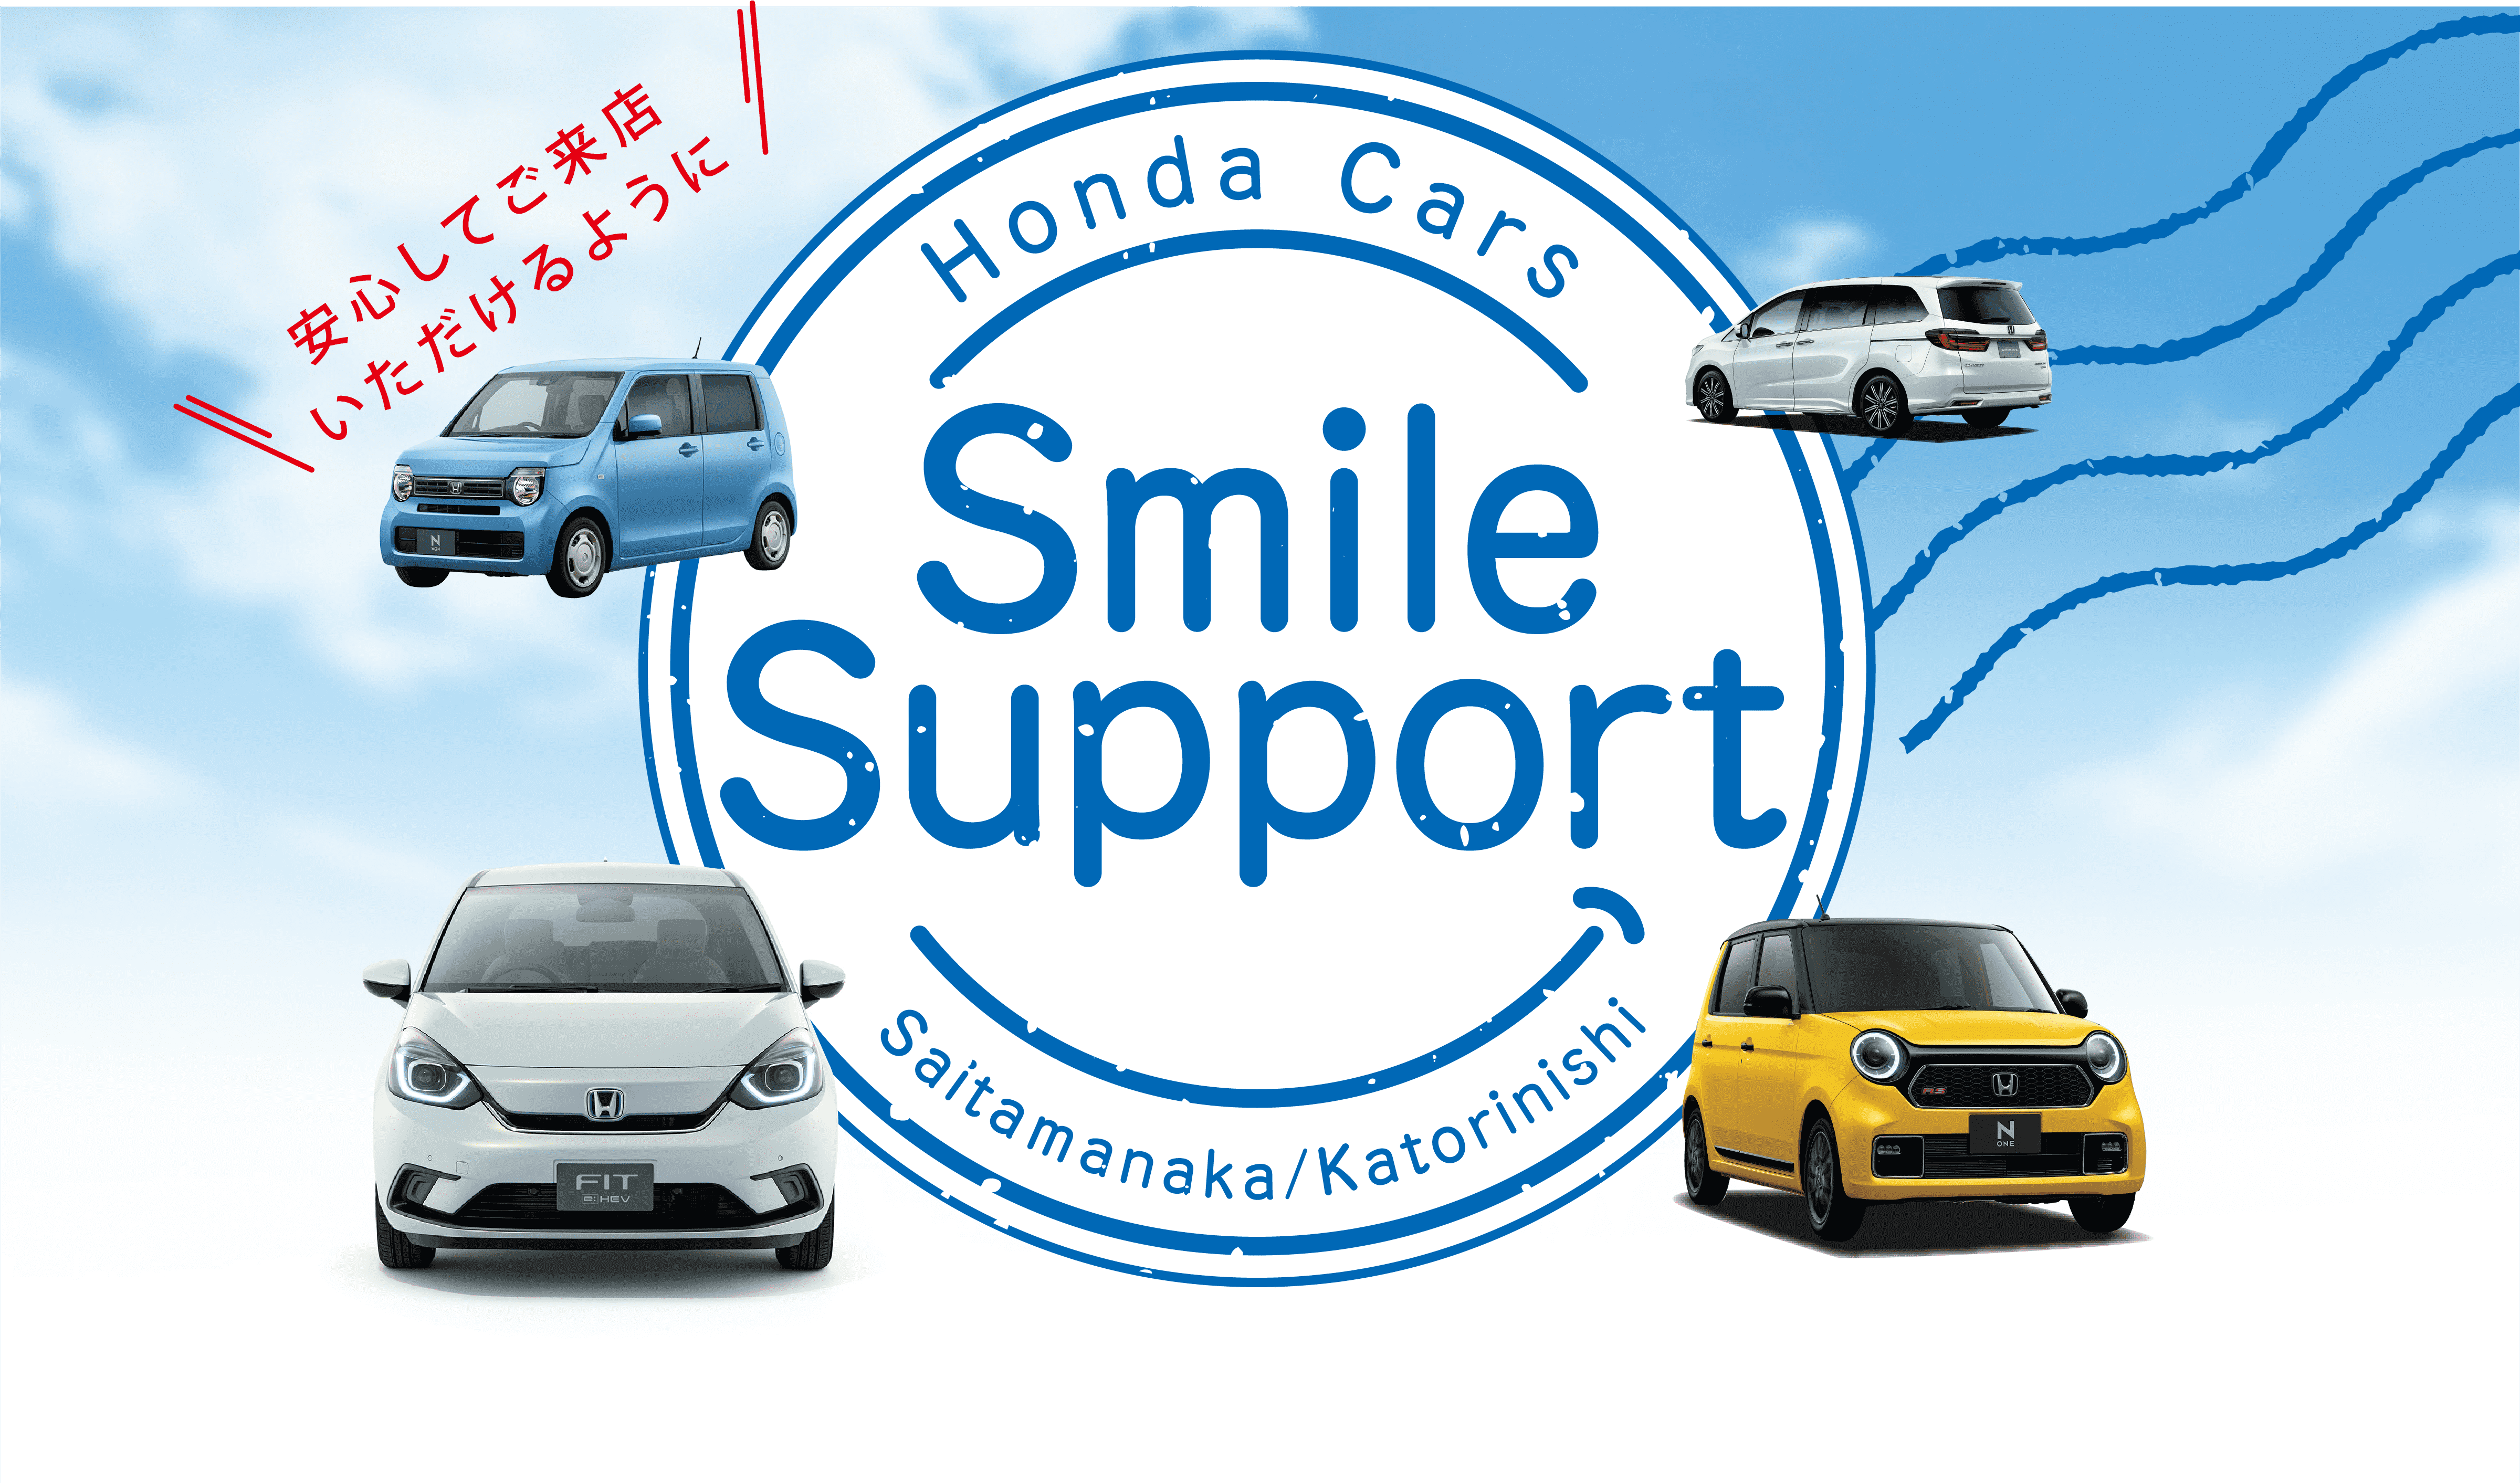 Smile Support